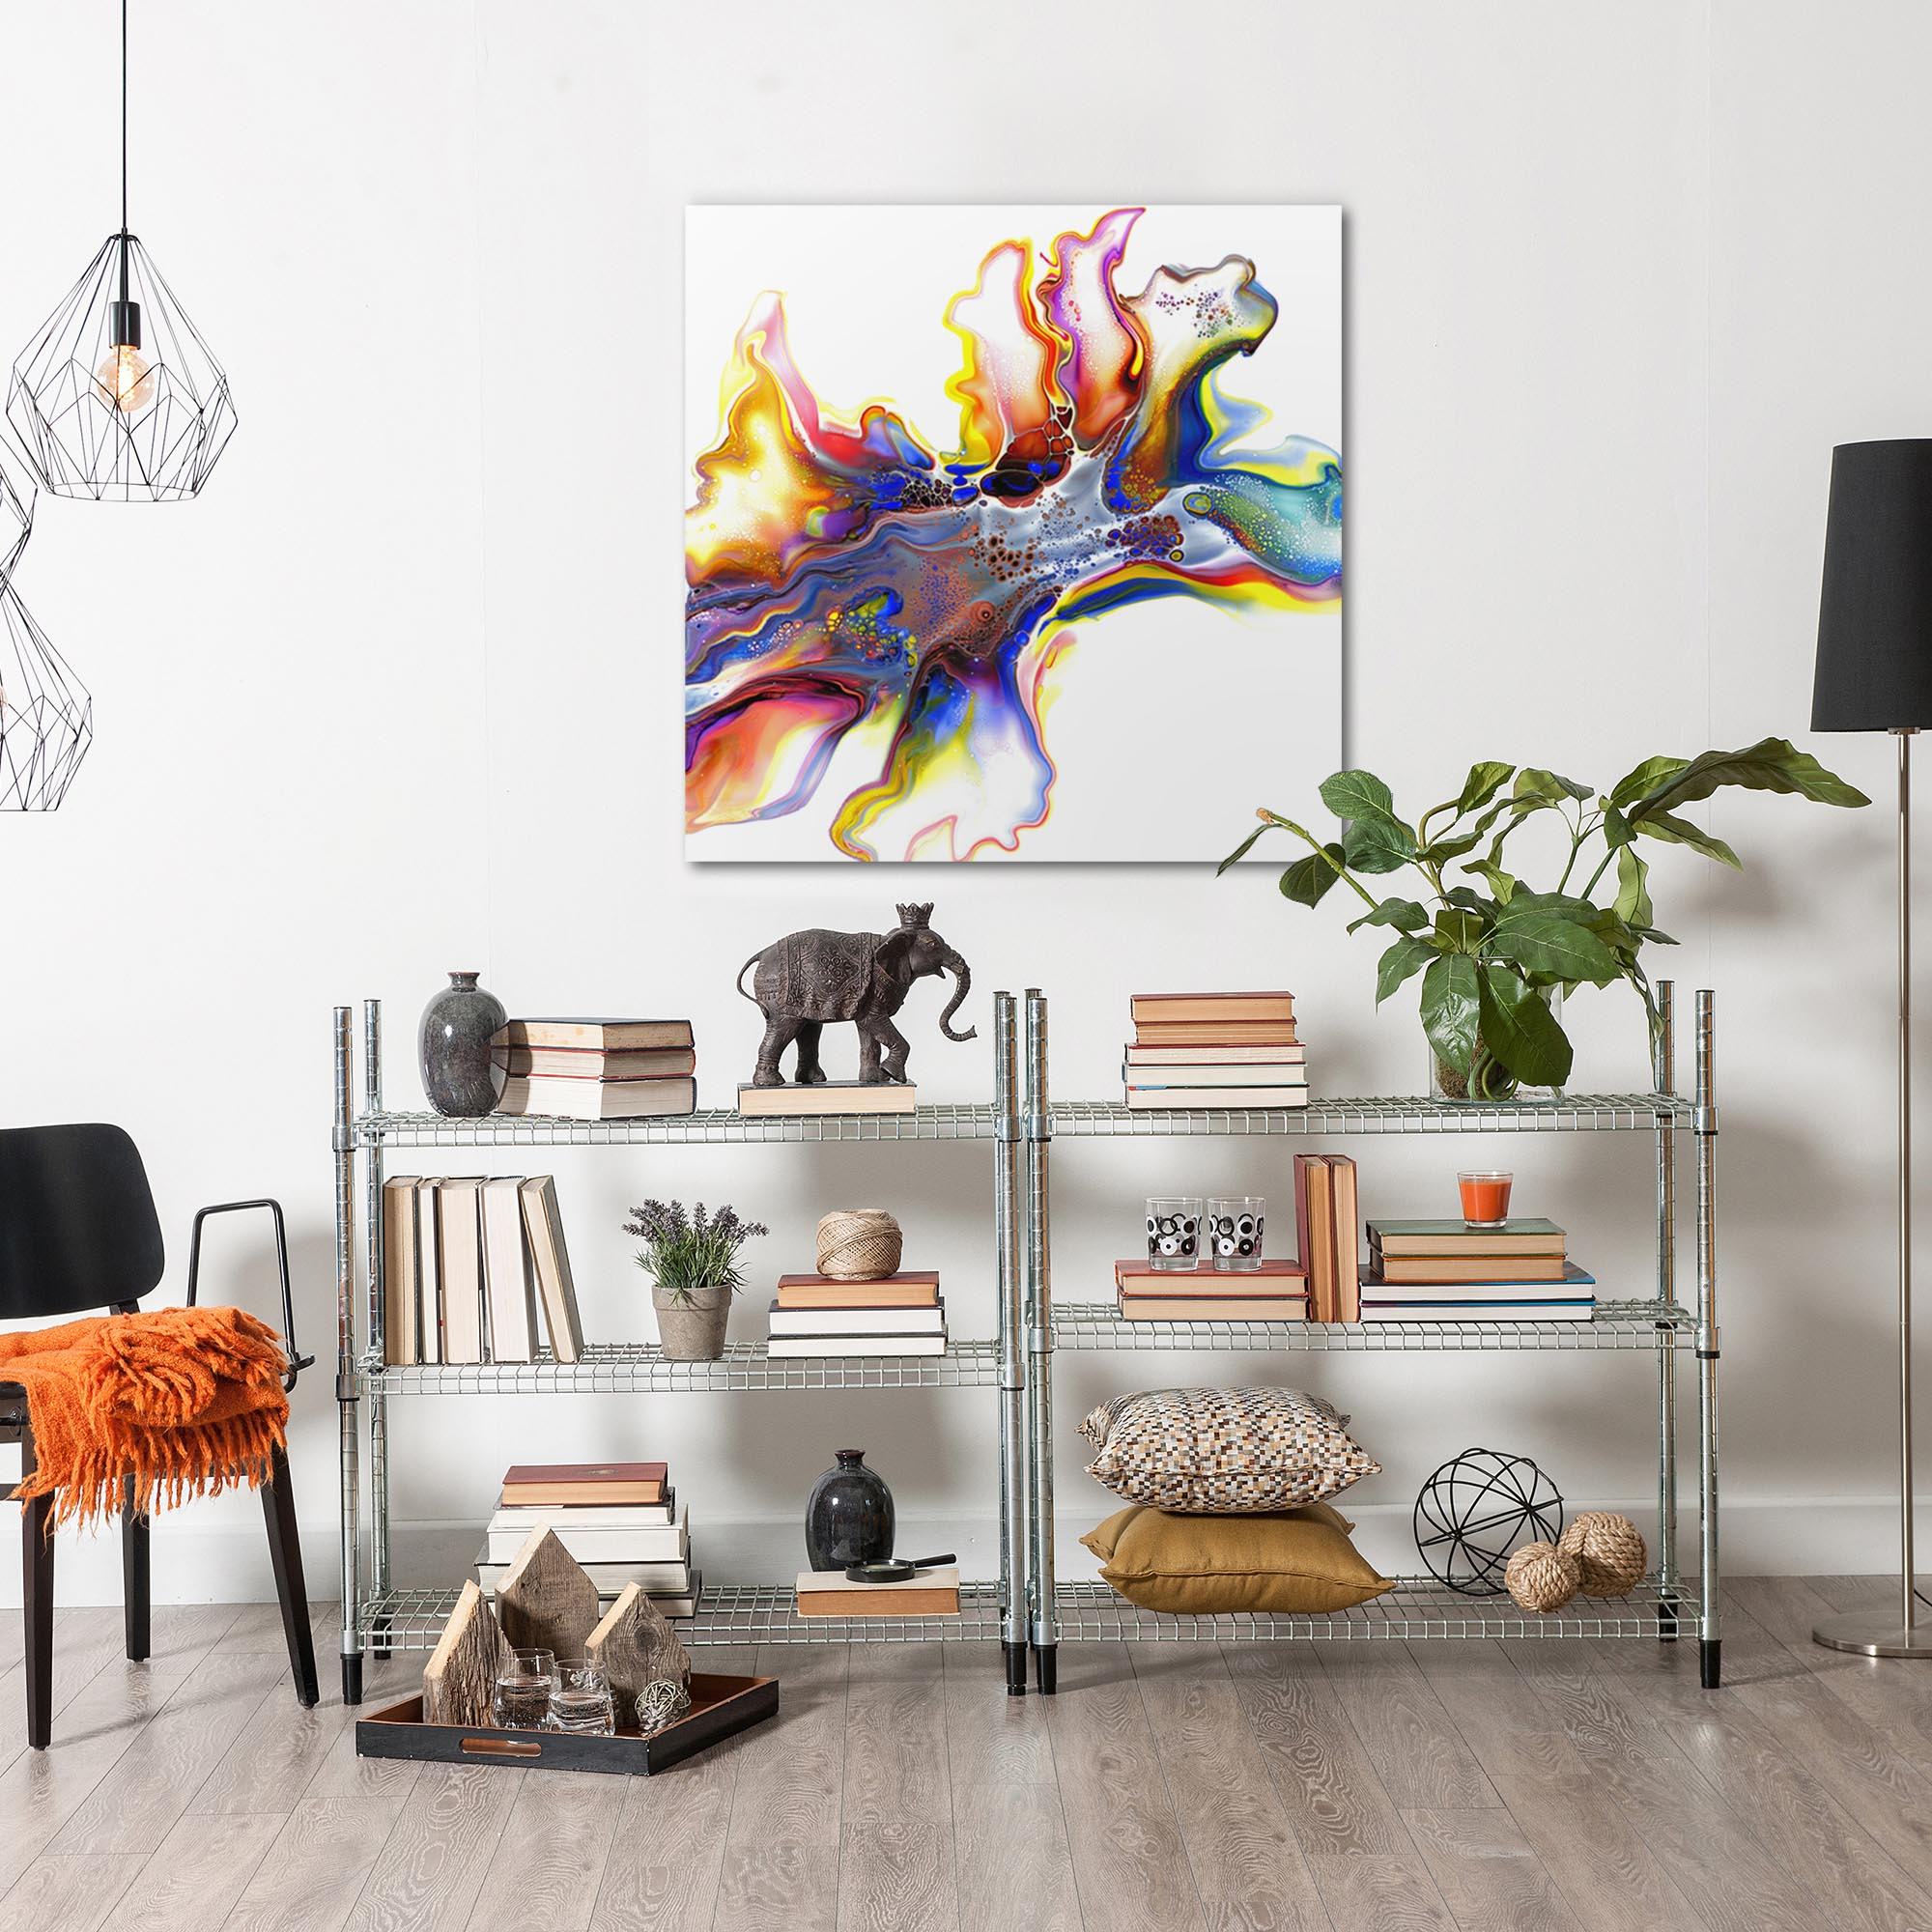 Medley by Elana Reiter - Abstract Wall Art, Modern Home Decor (36in x 36in) - Image 3